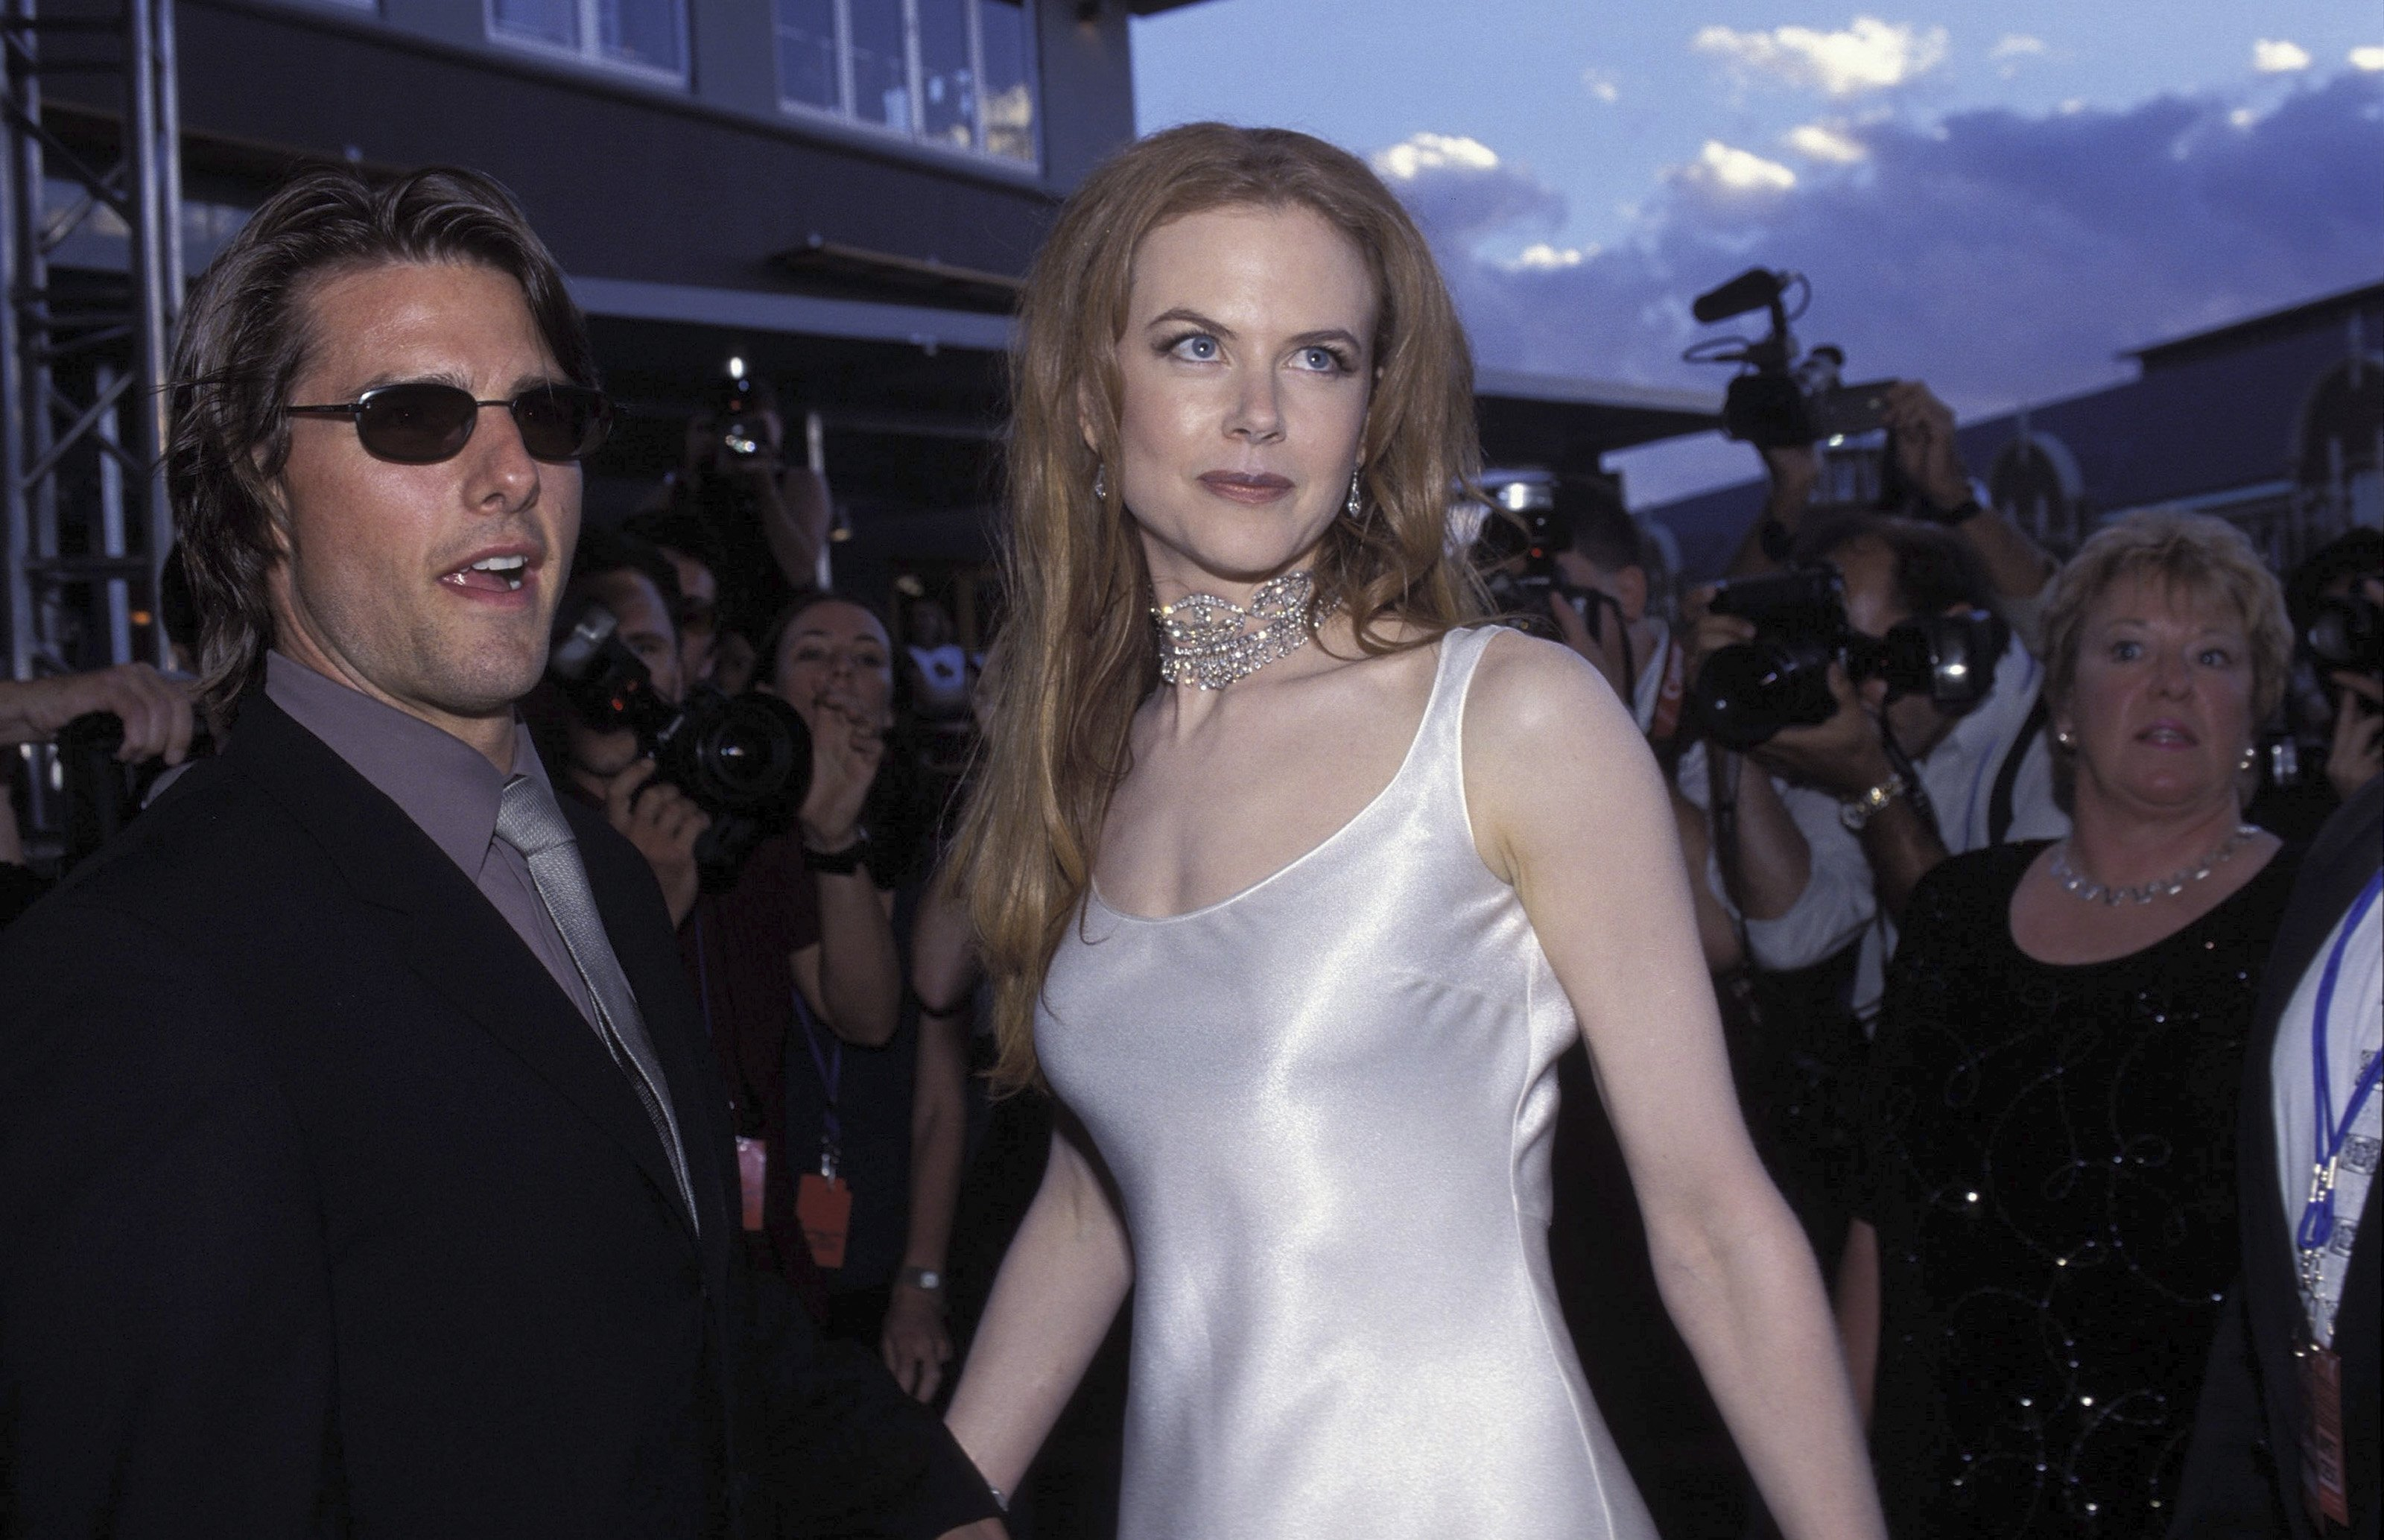 Nicole Kidman et Tom Cruise au Gala Fox Studios à Sydney, Australie en 1999 | Source : Getty Images/Global Images Ukraine